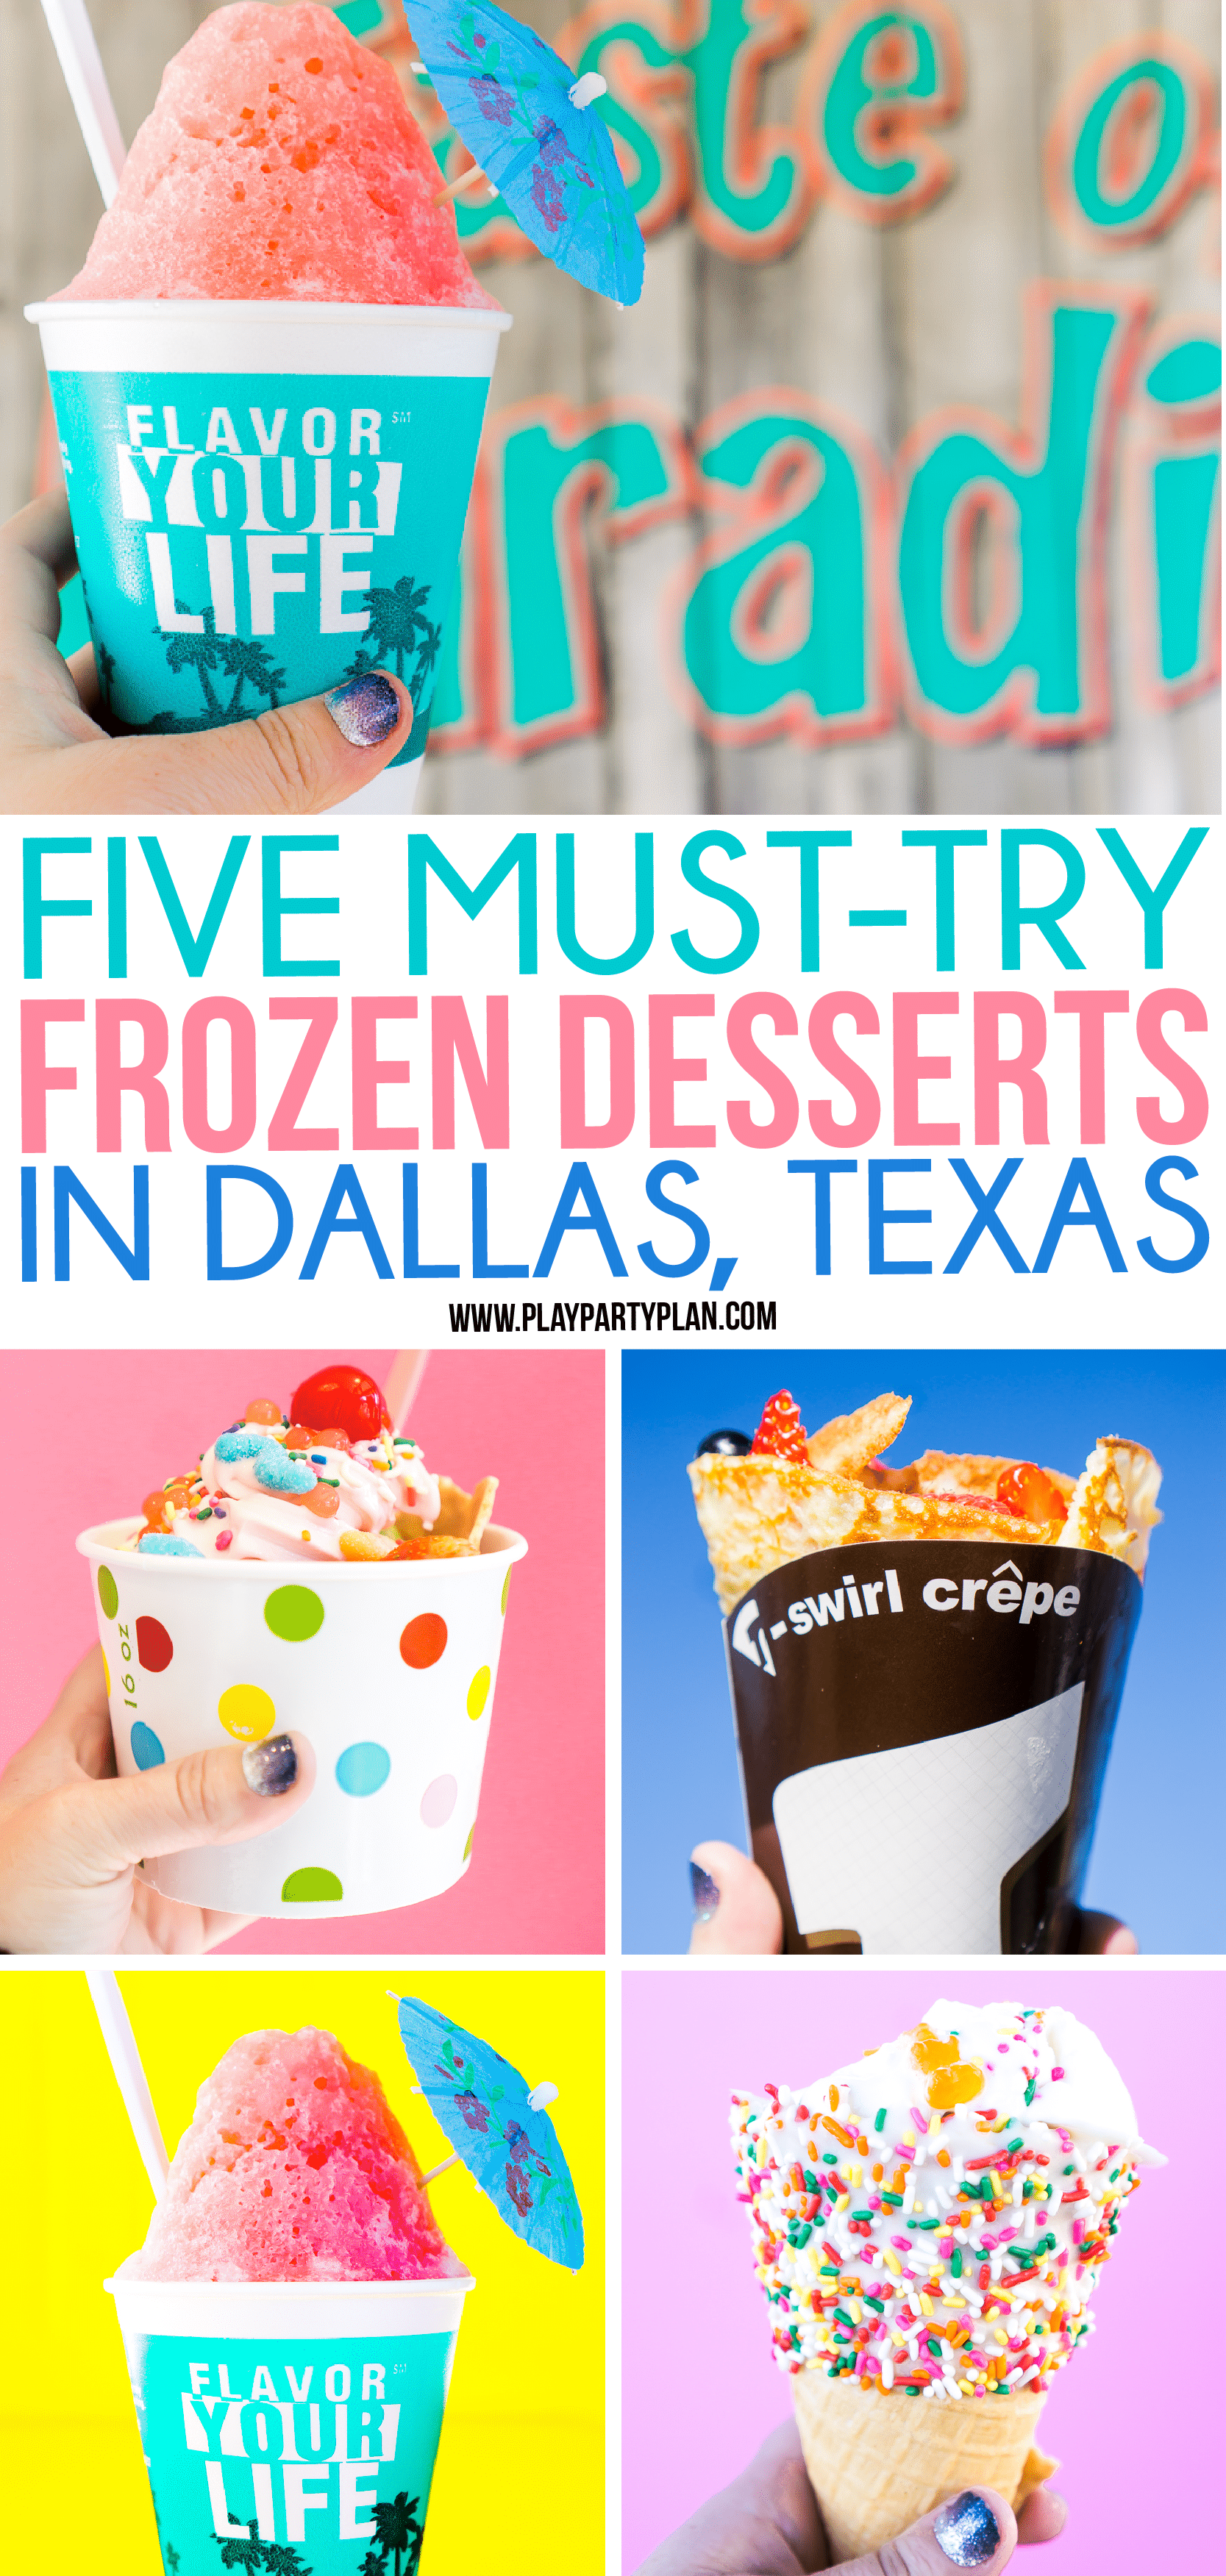 Next time you're in Dallas, Texas make sure you add checking out these dessert restaurants to your list of things to do! And save money on them by using the Groupon+ app to get money back!